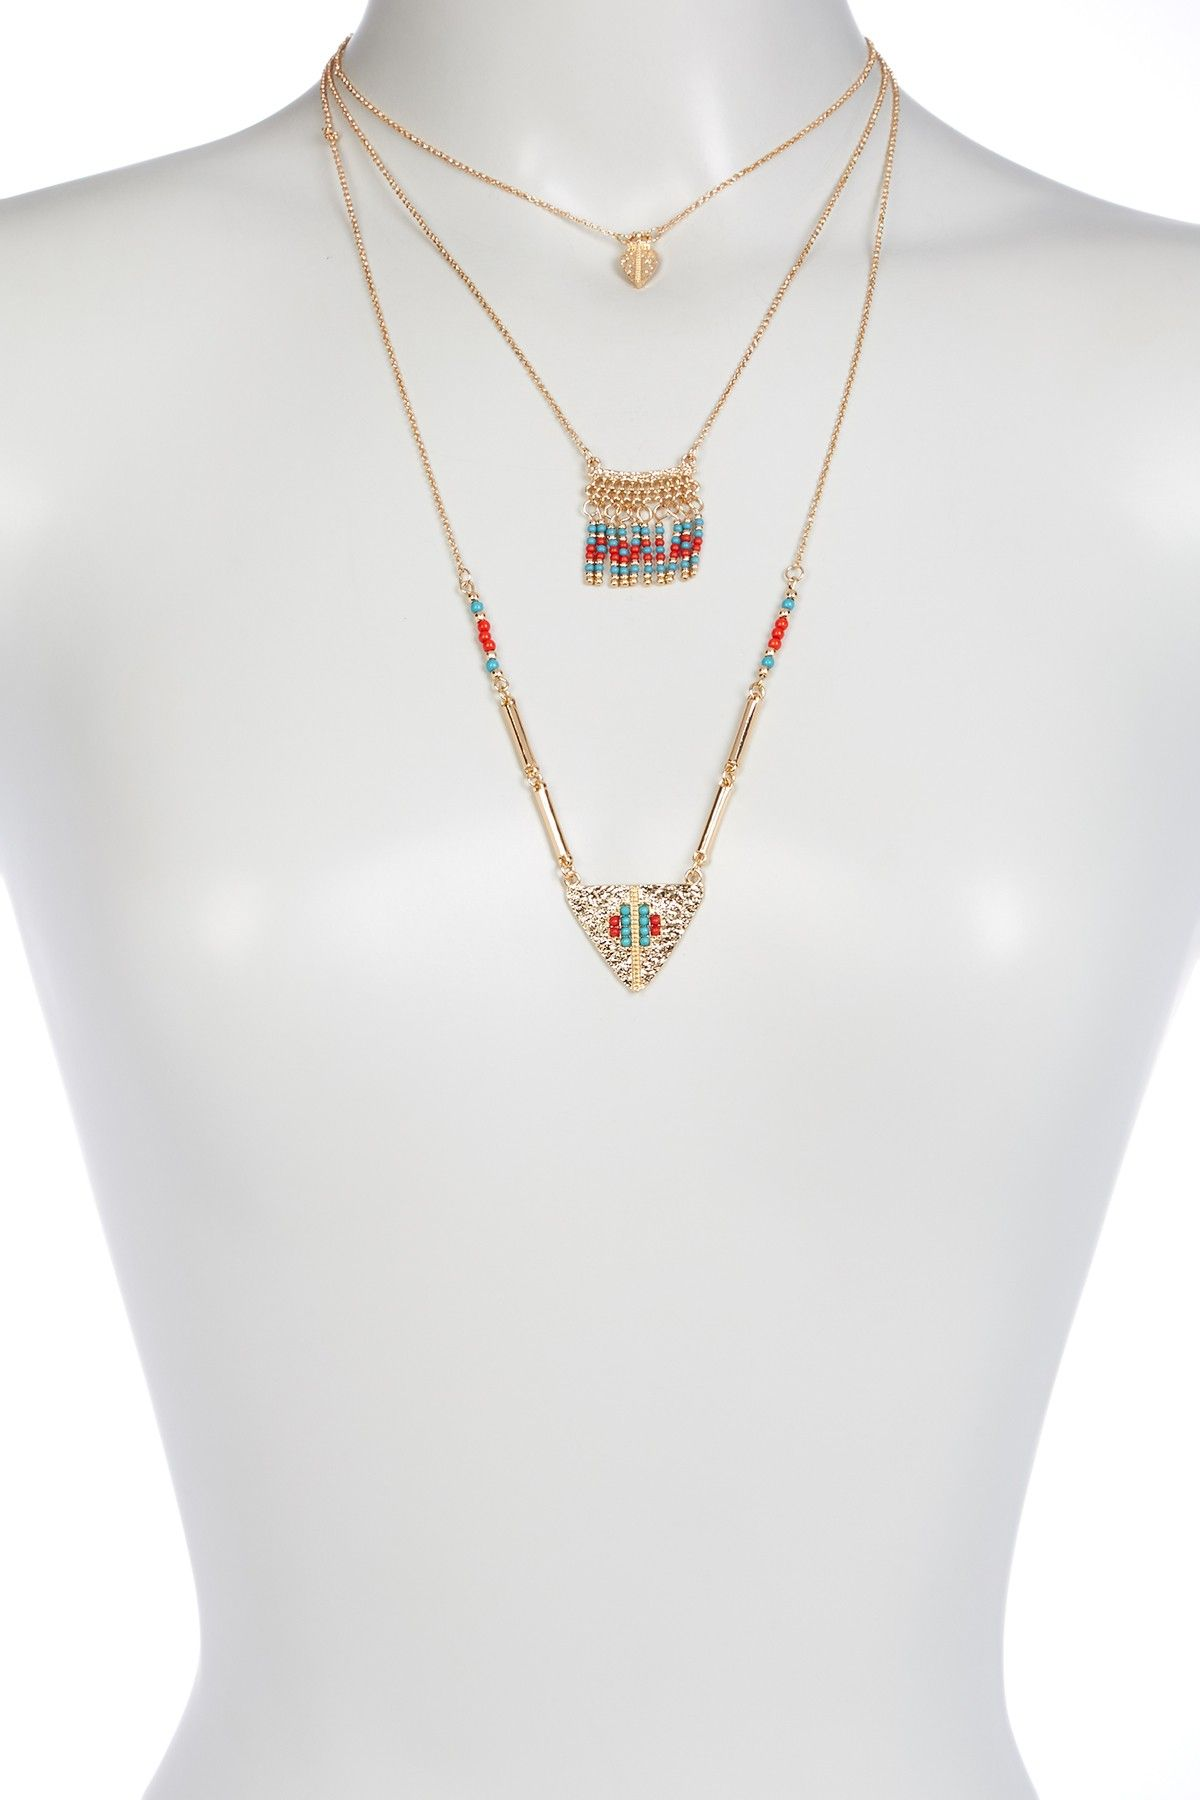 Leaf Charm, Bead Fringe, & Textured Triangle Pendant 3-Piece Necklace Set